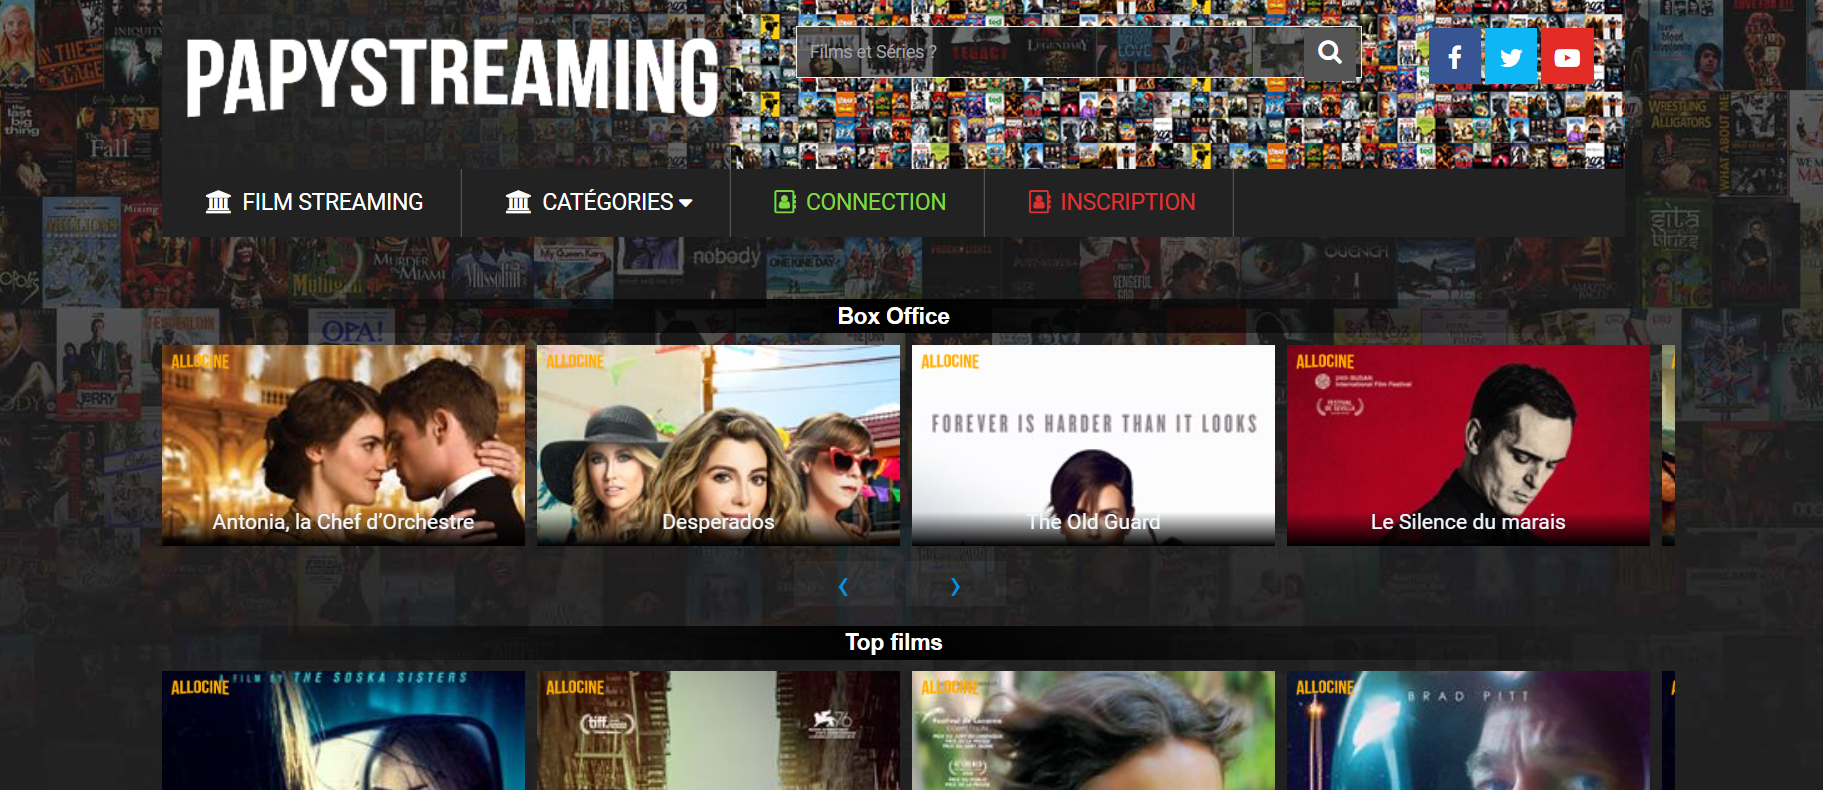 Site de streaming Papystreaming